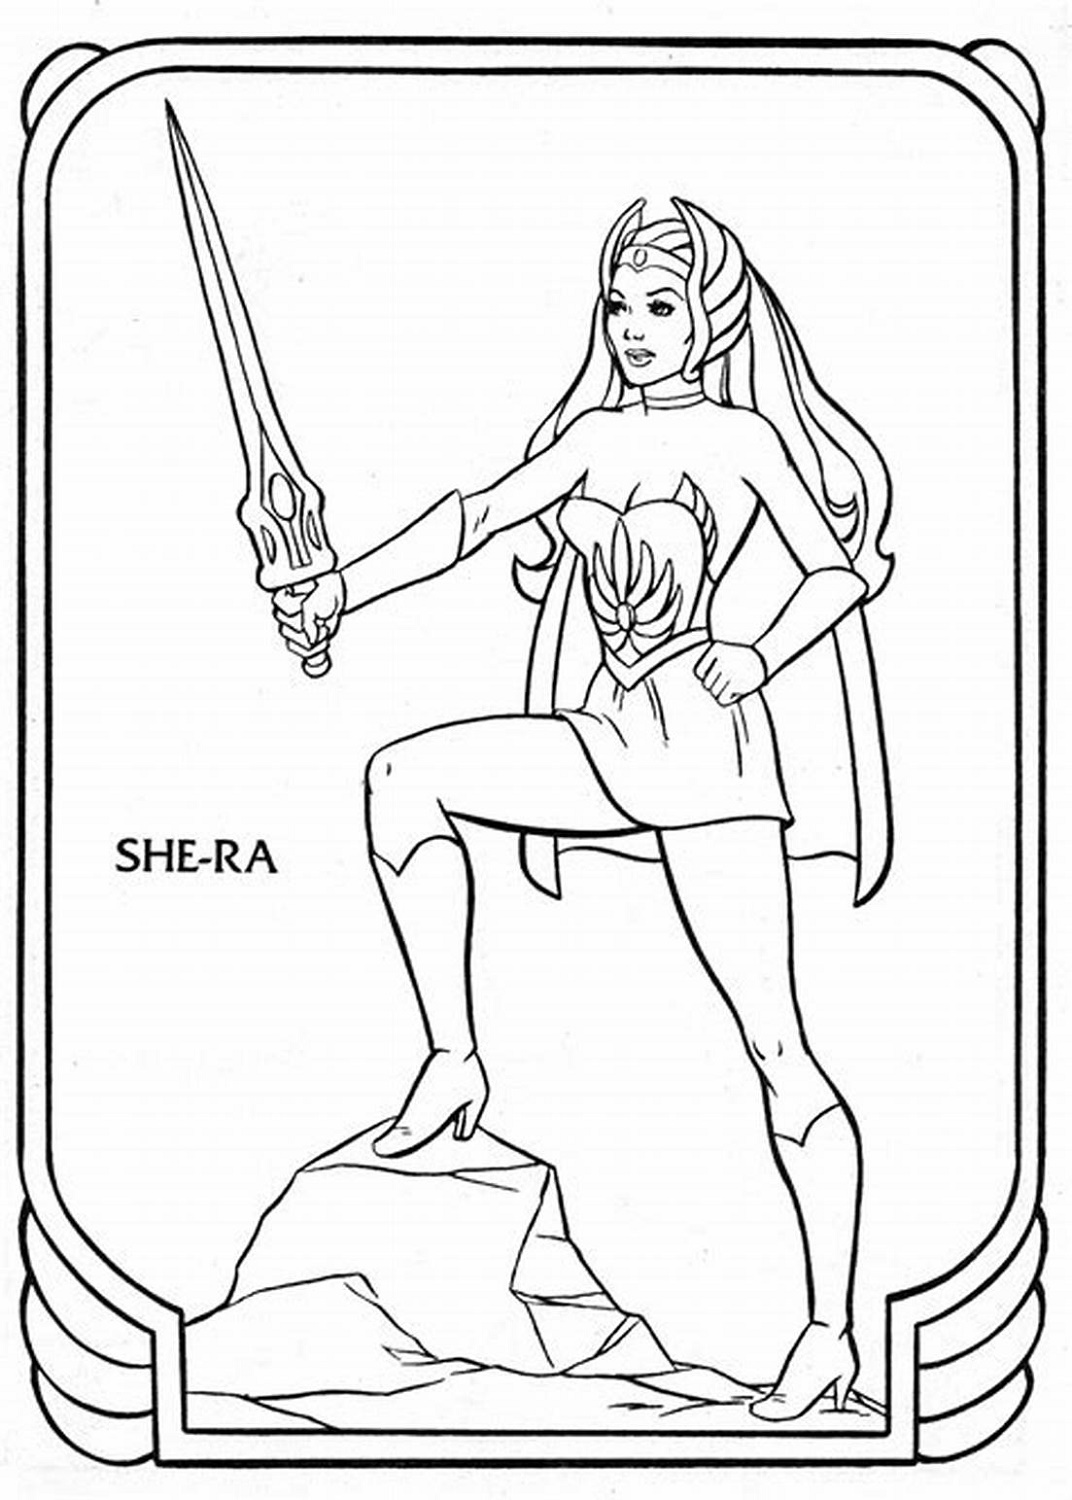 He Man Coloring Pages She-ra